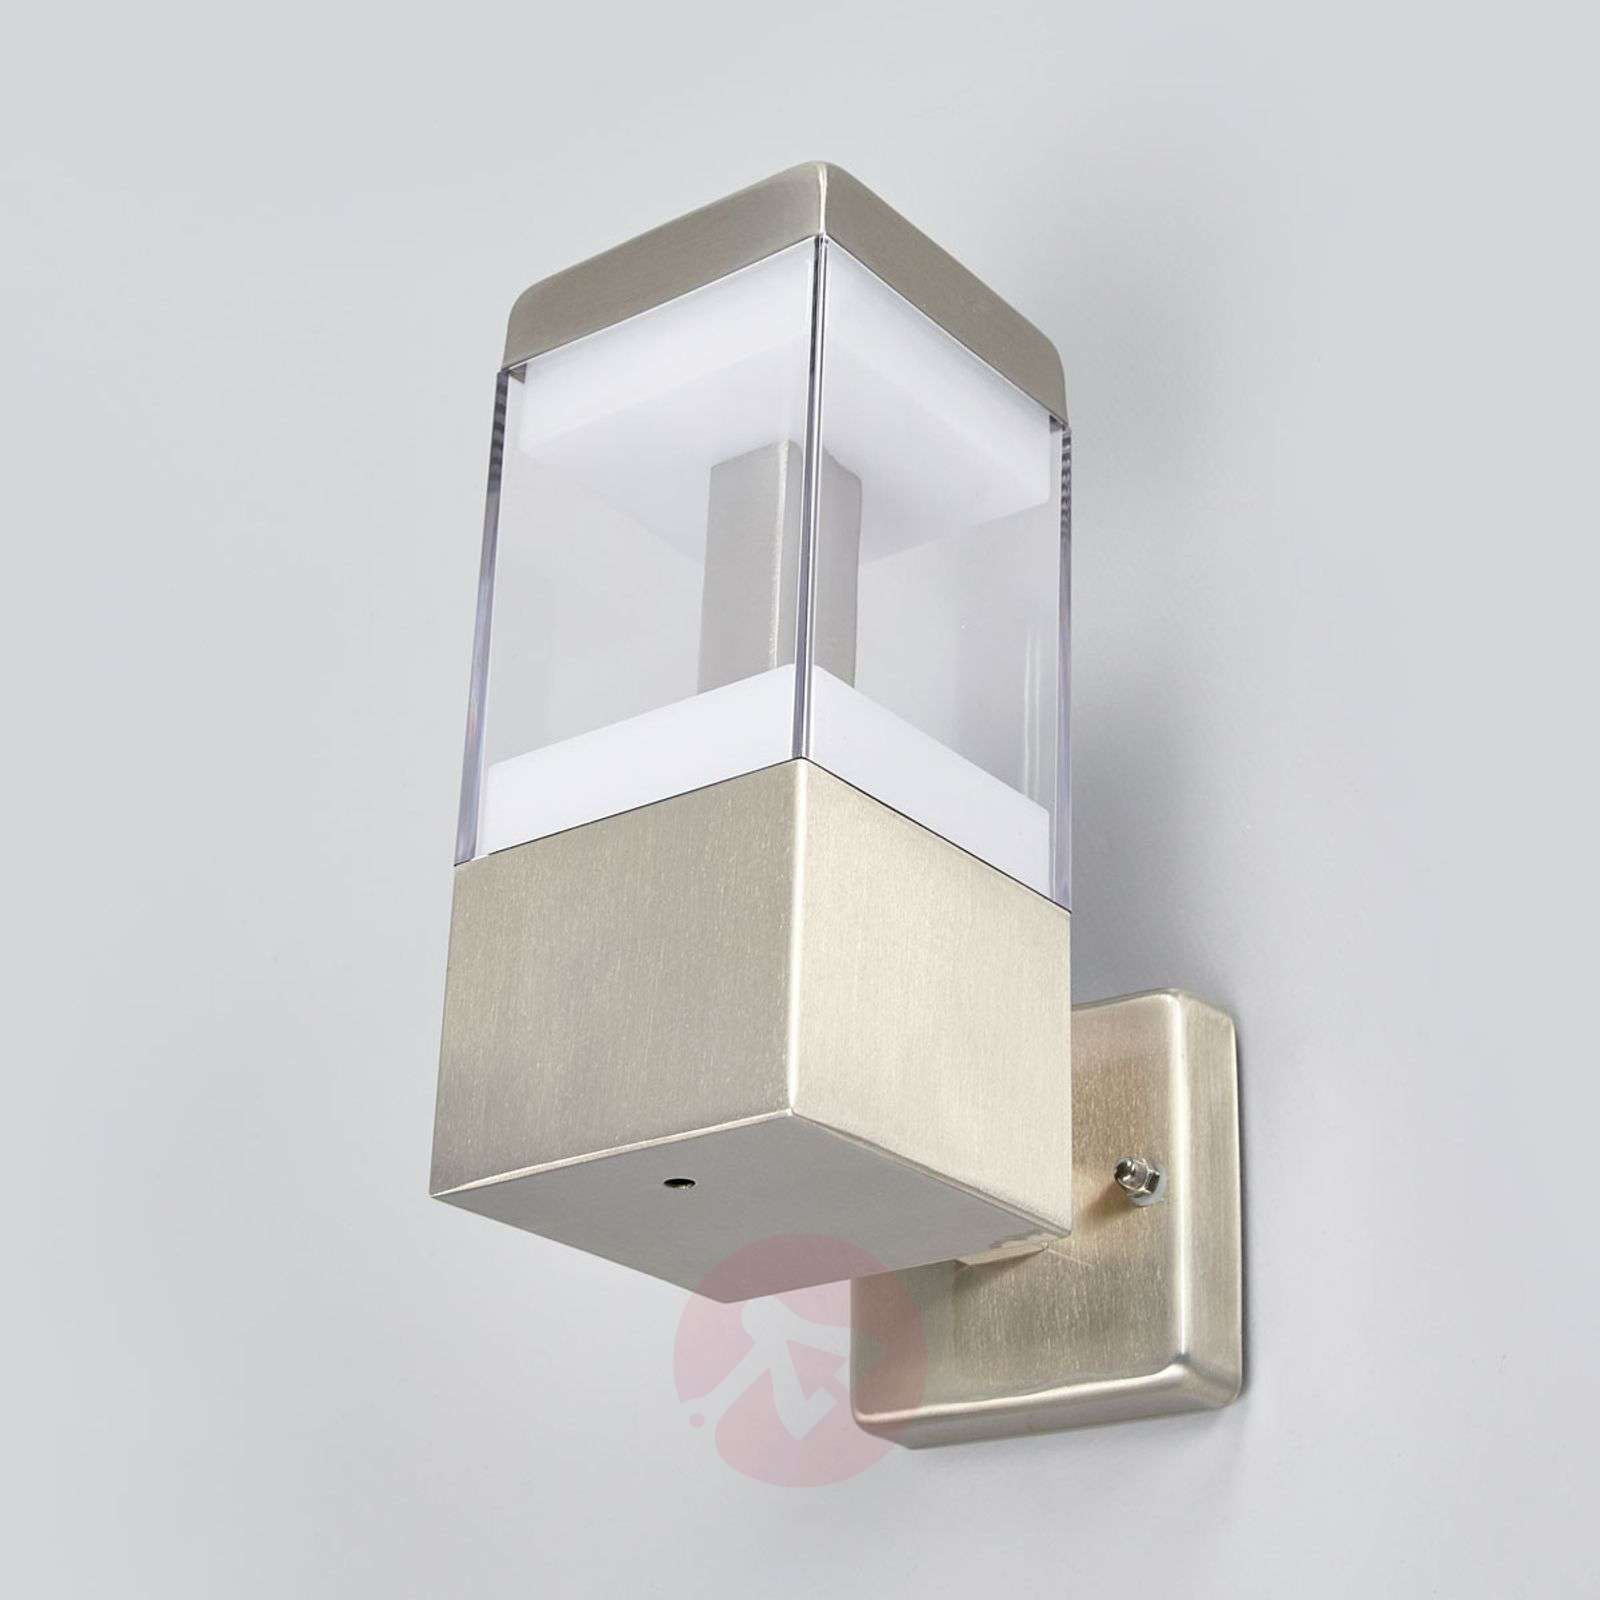 Applique d 39 ext rieur led baily en inox for Luminaire exterieur inox led